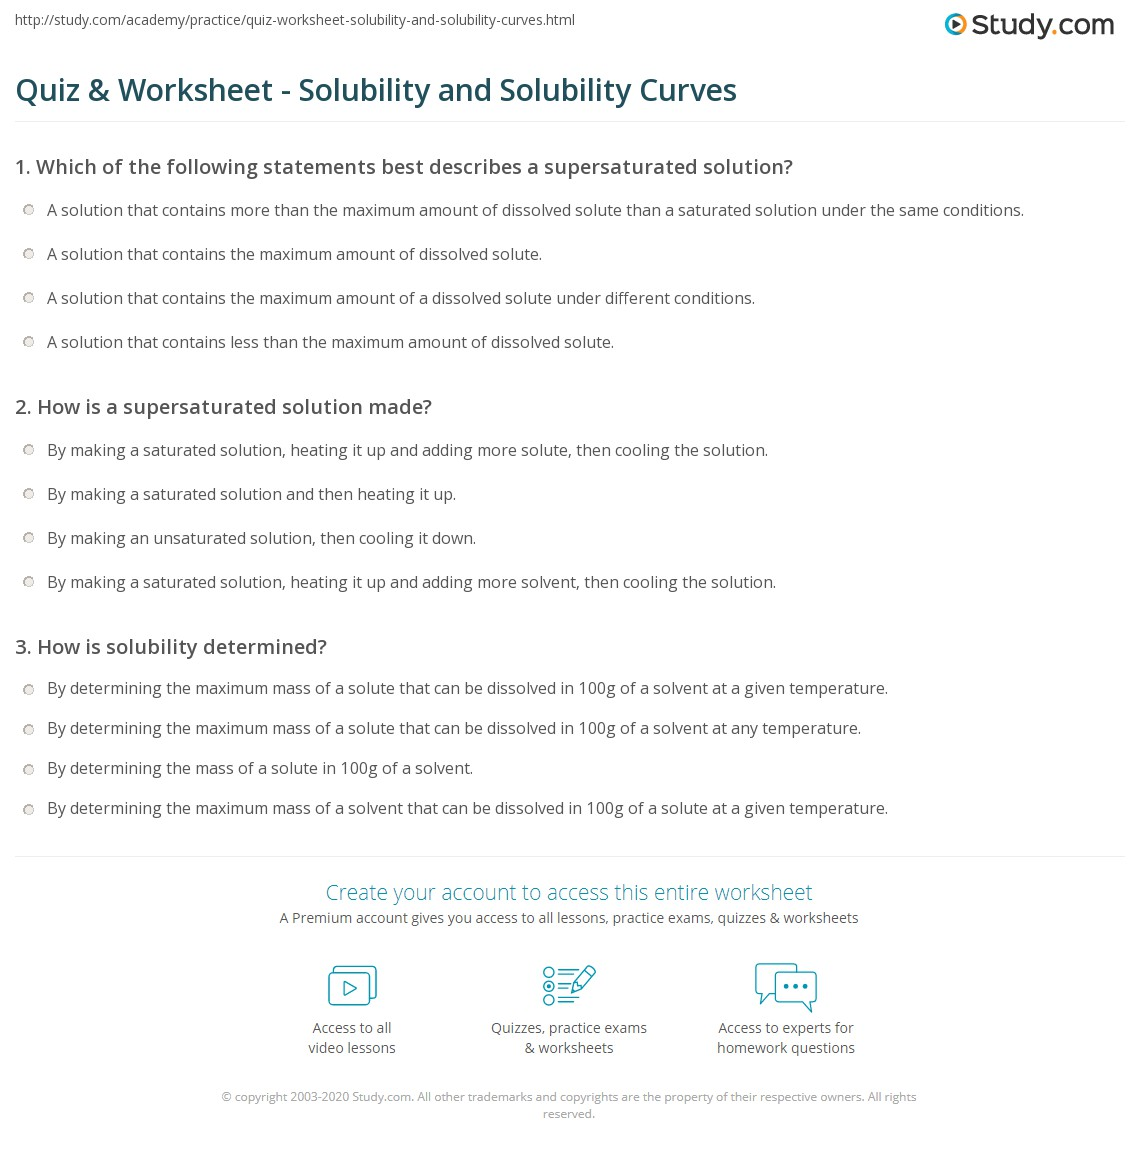 Quiz & Worksheet Solubility and Solubility Curves